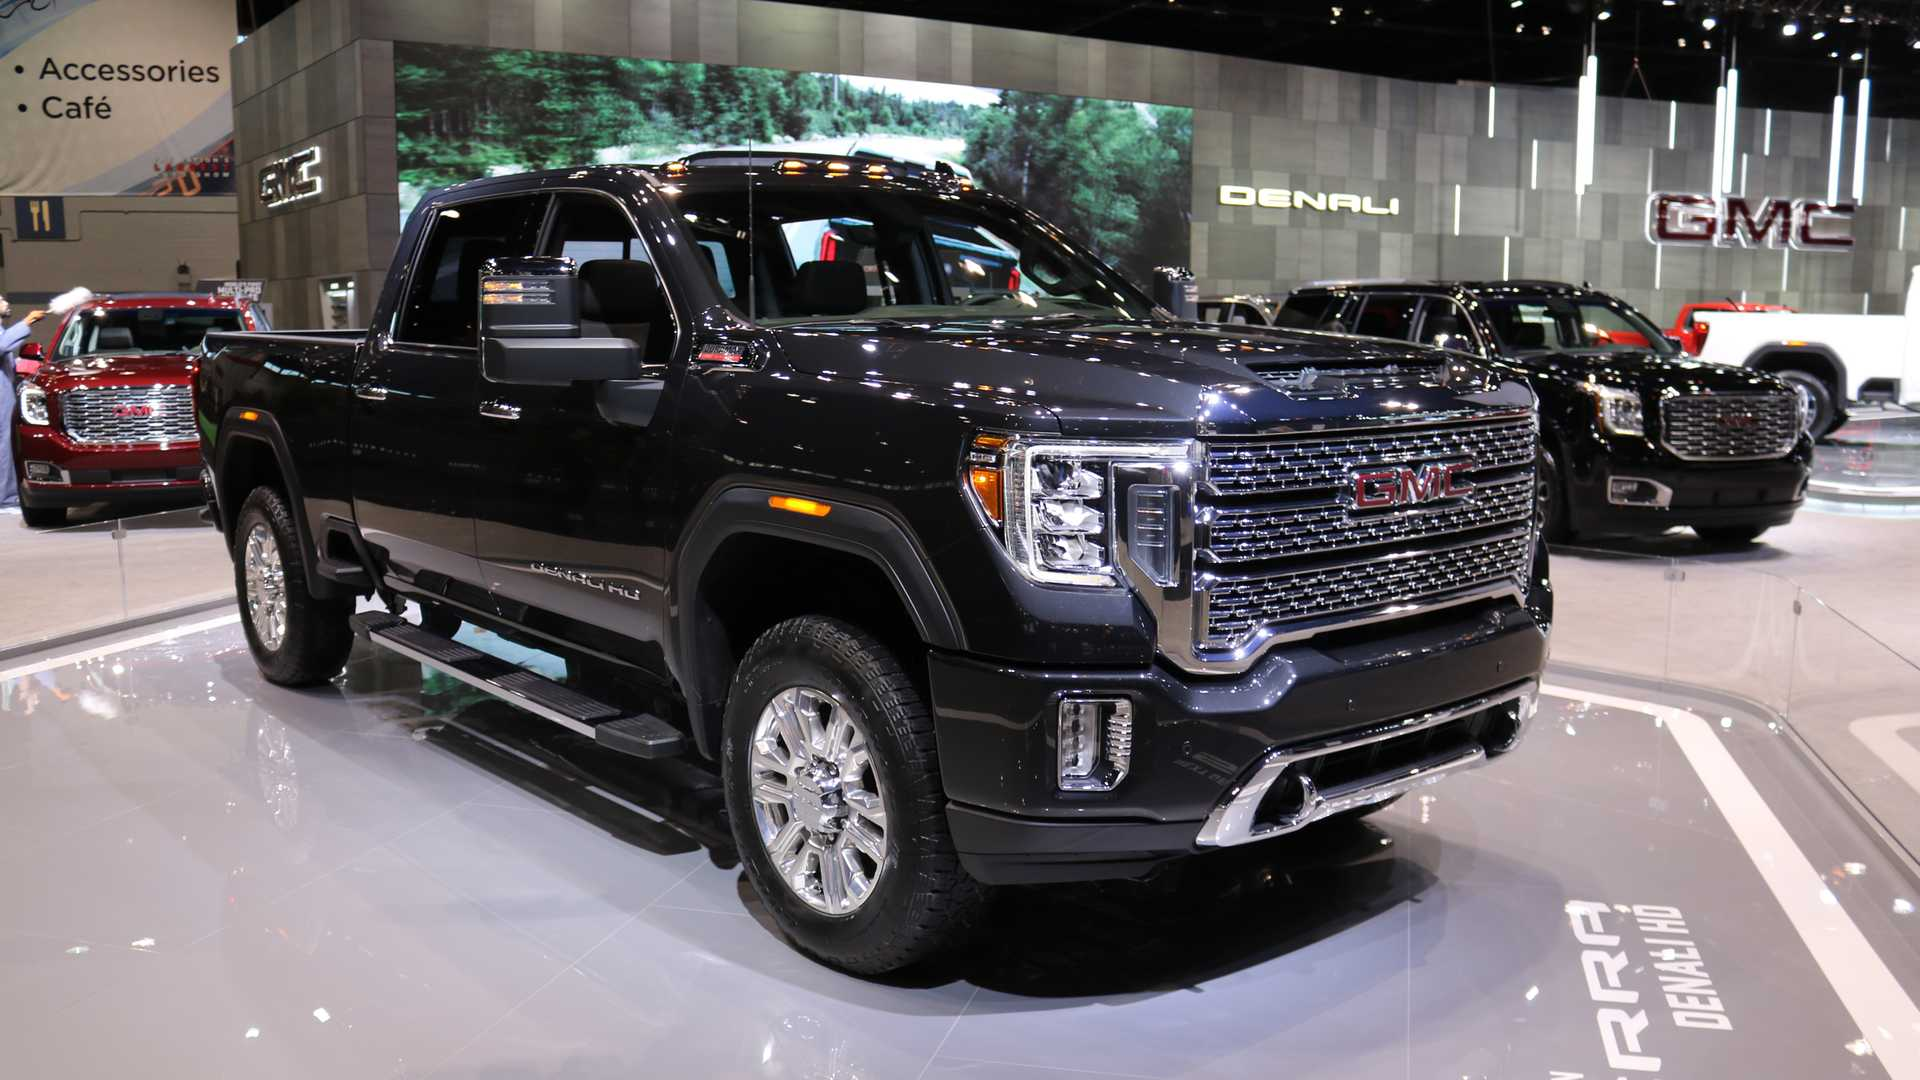 67 All New Pics Of 2020 Gmc 2500 Style by Pics Of 2020 Gmc 2500